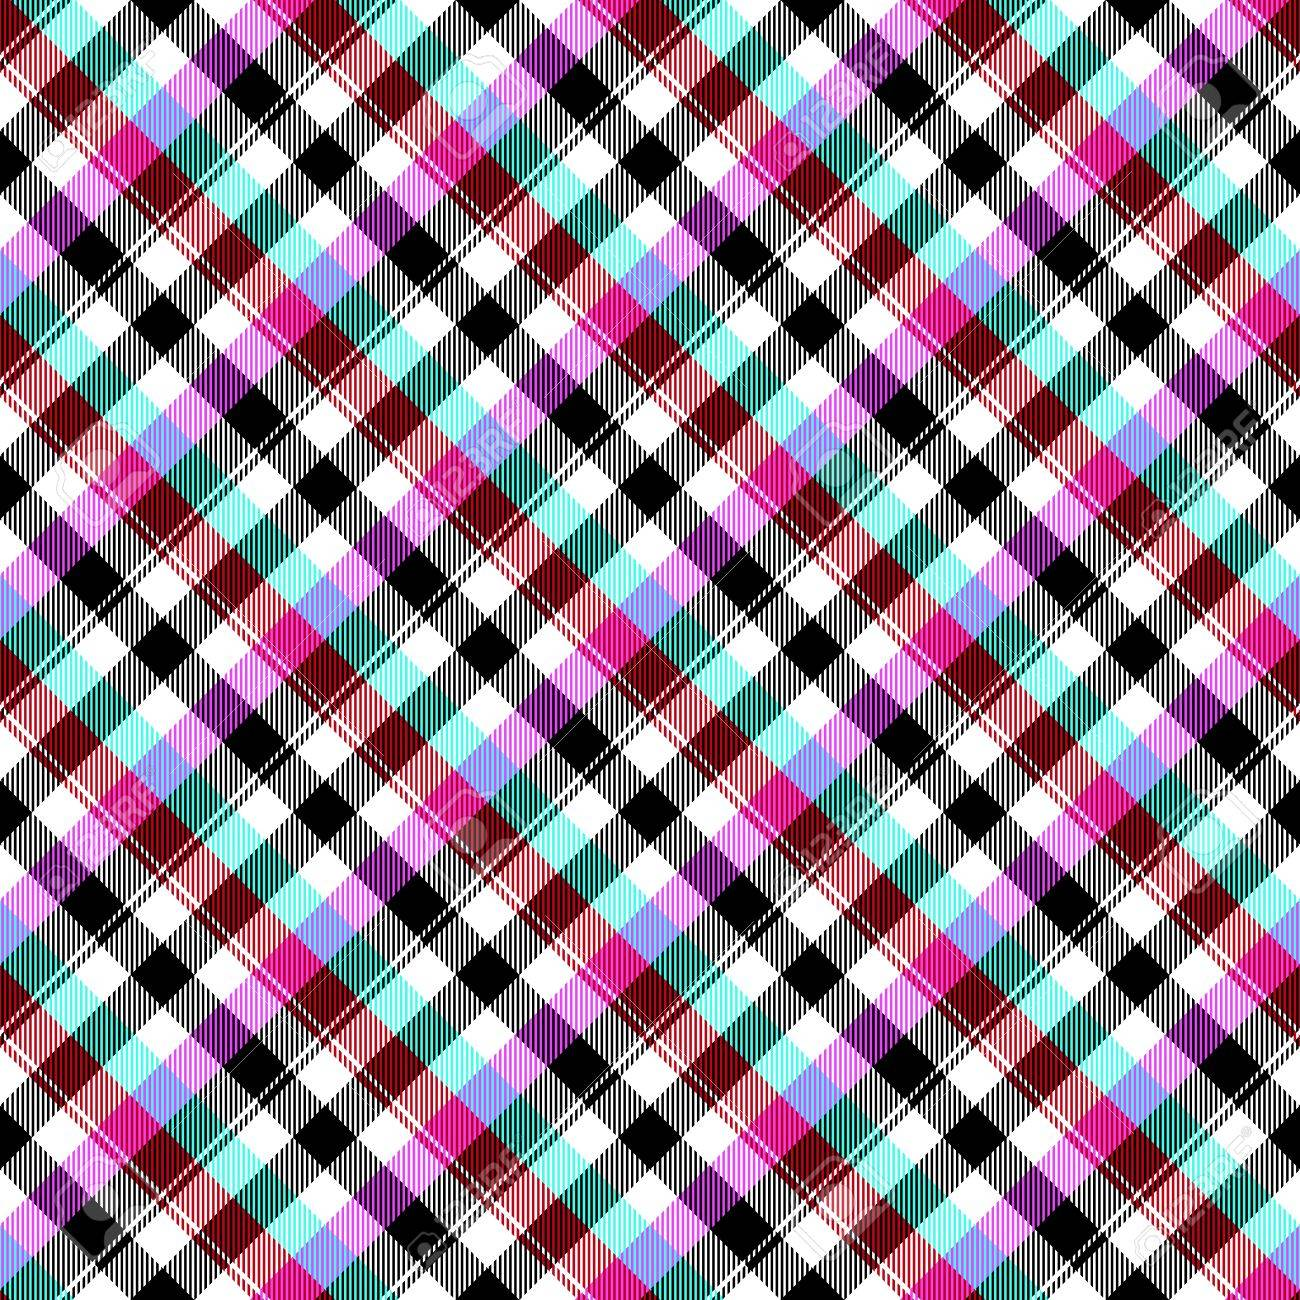 Abstract Blue Red Purple Black White Checkered Diagonally Seamless